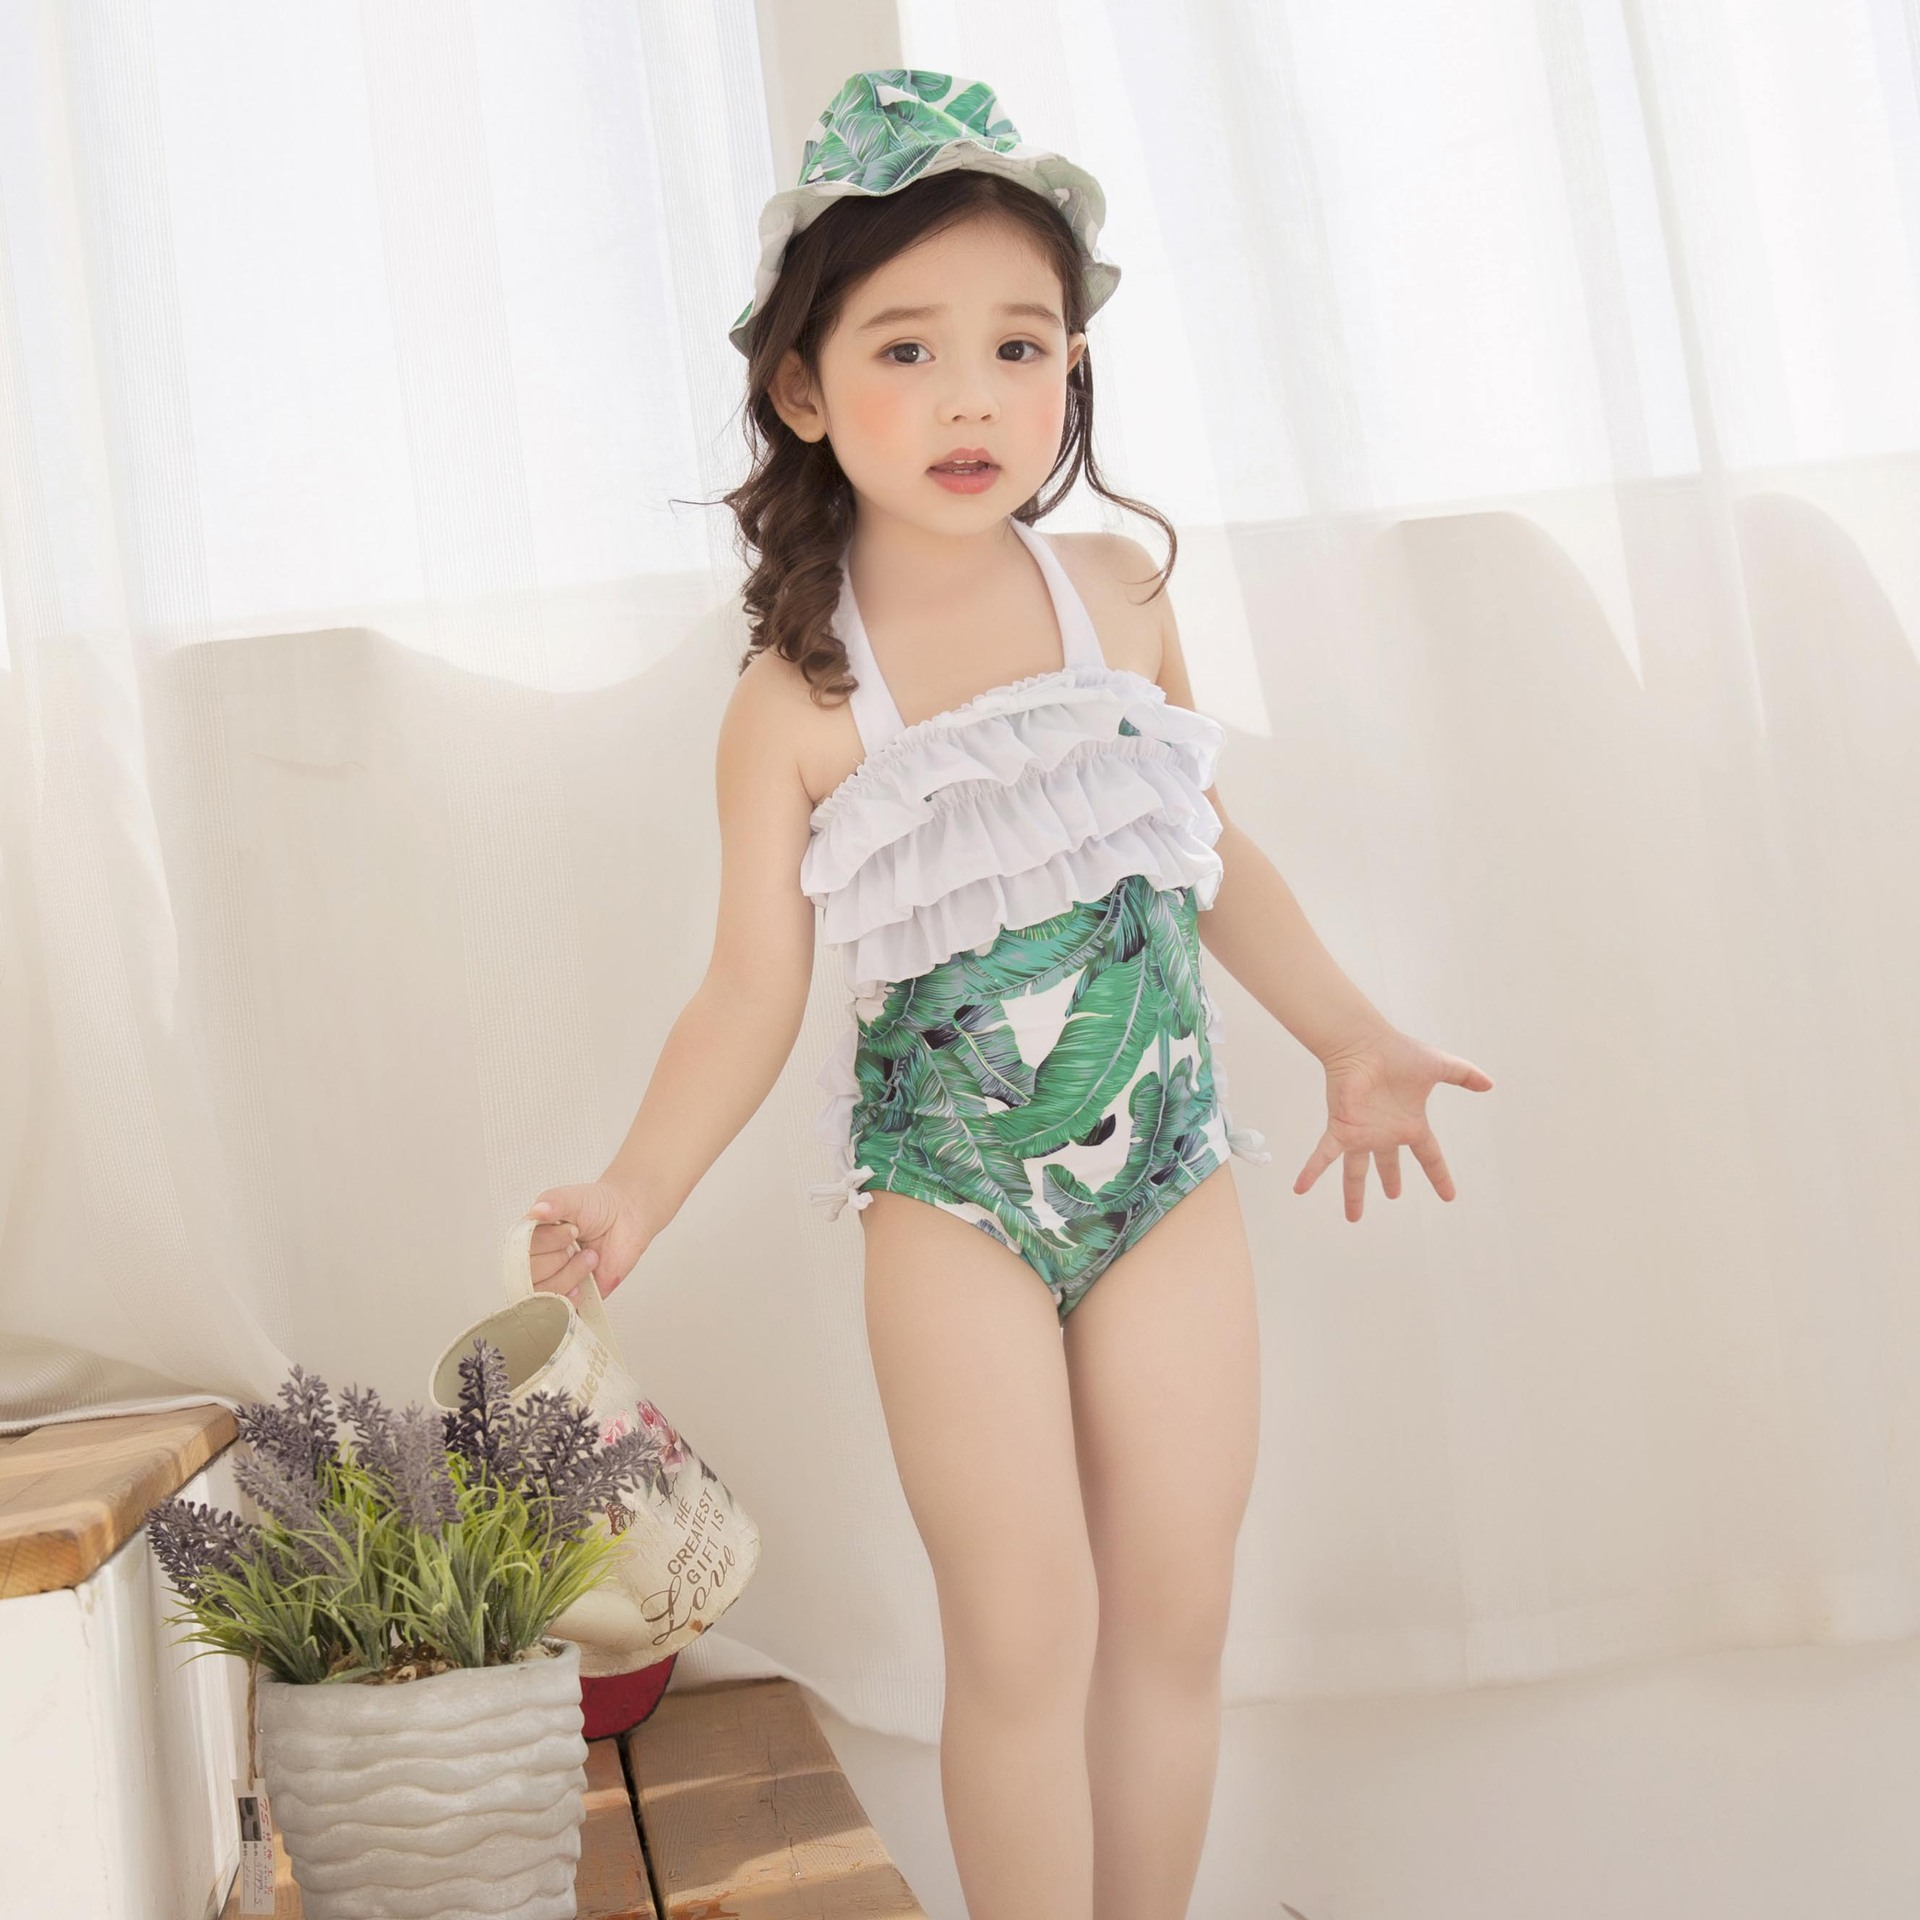 Kids Swimwear For Girls Baby Girl Swimming Suit Child Bikini Bathing 2017 New Children Print Retro Biquinis Badeanzug Zwembroek 35